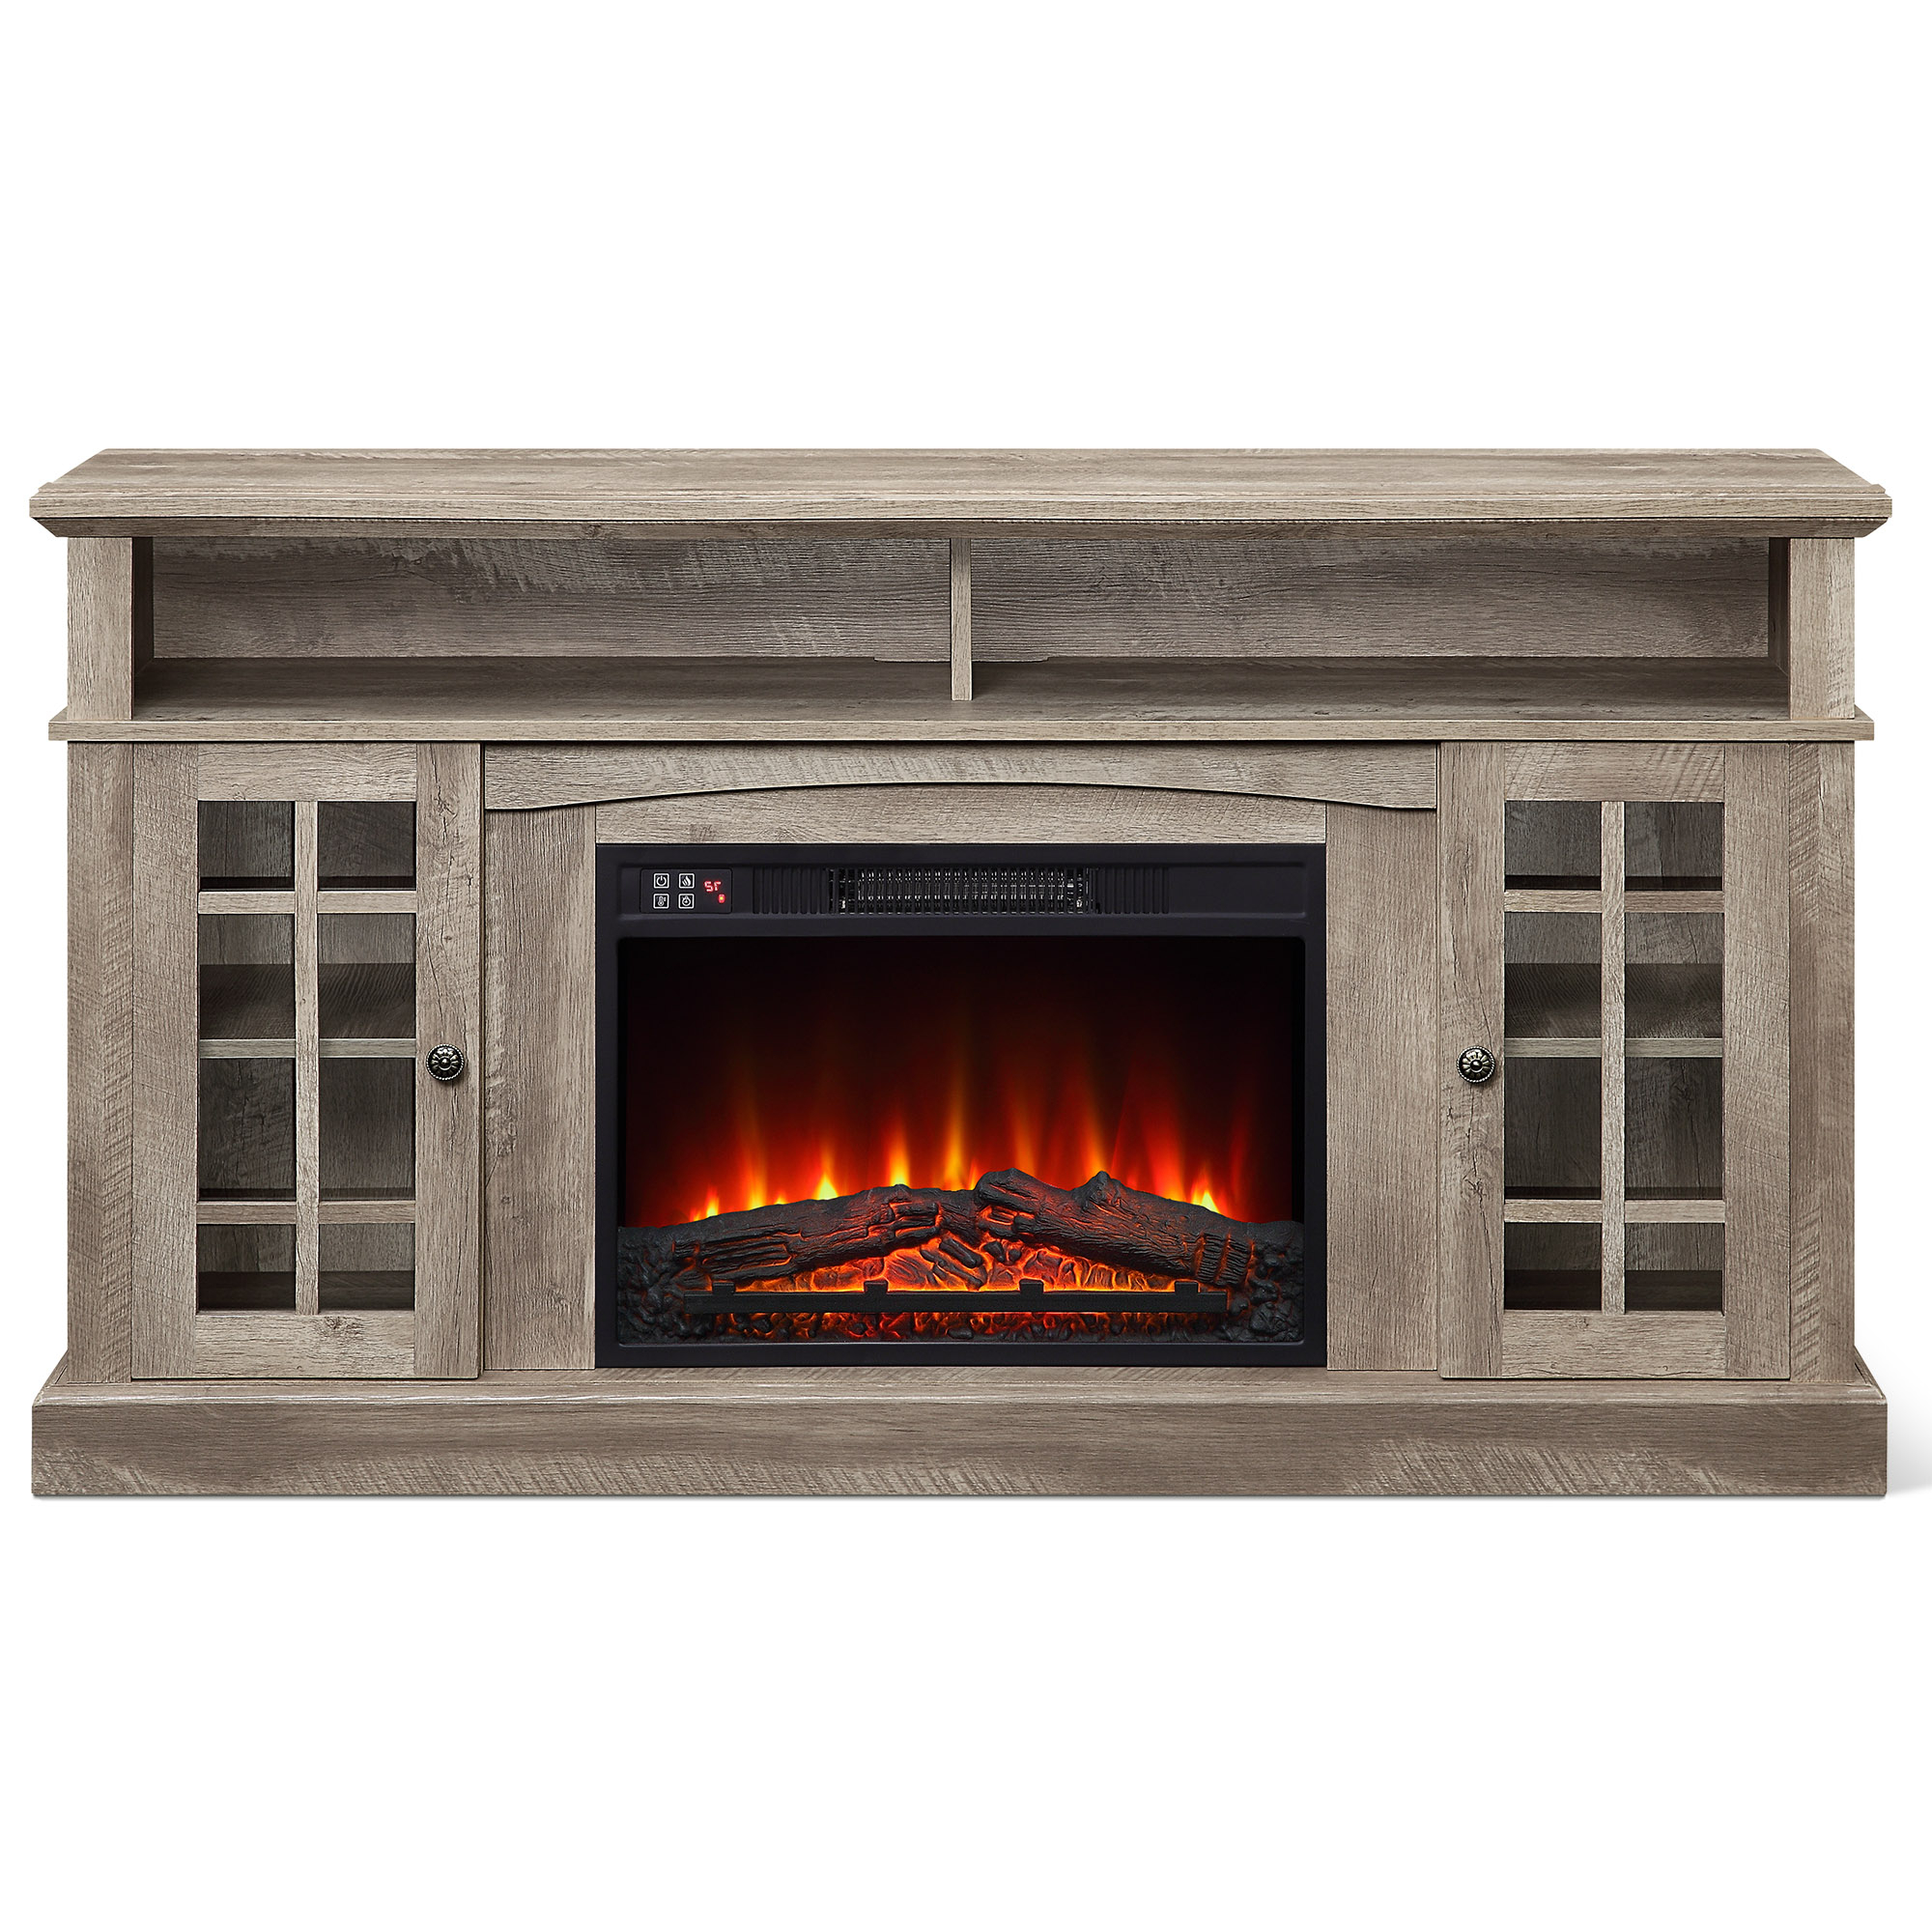 """Belleze Fireplace Tv Stand With Remote Control Console For Best And Newest Wolla Tv Stands For Tvs Up To 65"""" (View 21 of 25)"""